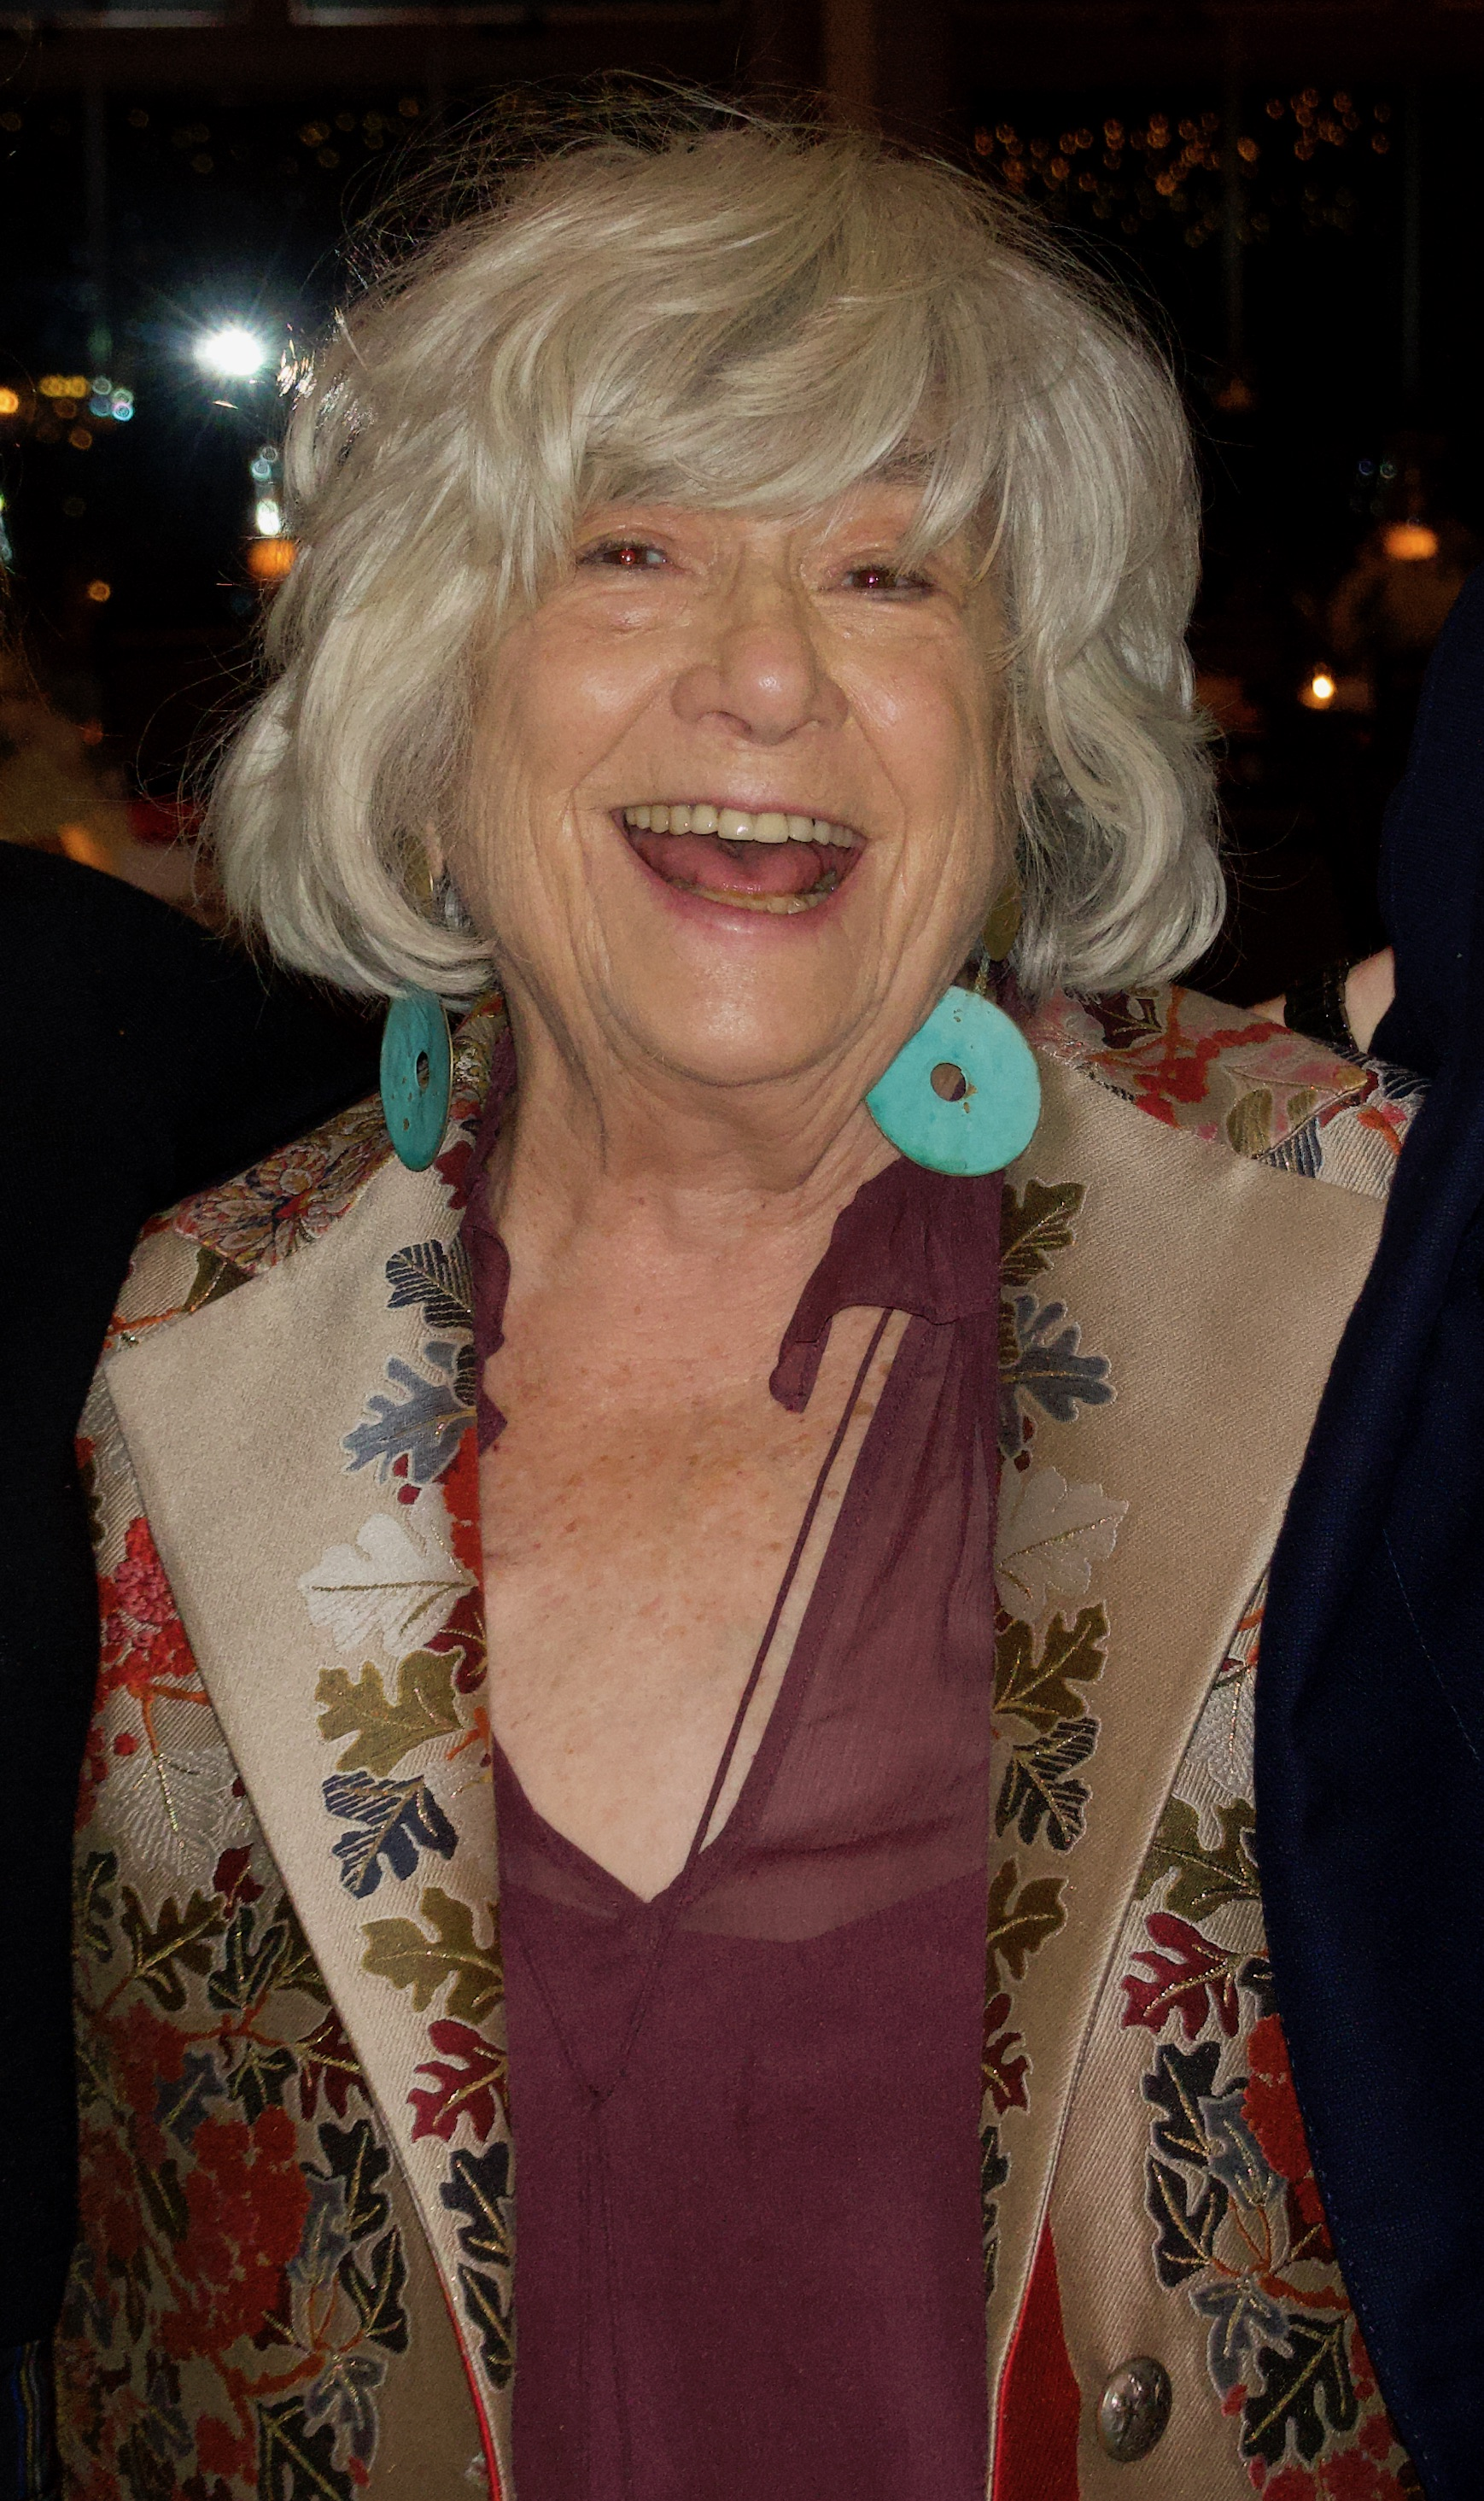 """Things changed about my work with aging. I have a better sense in telling stories. I was never better than in my later years - Susan Wood Richardson, photographer, founding member of the Women's Forum and author of the book """"Women"""", a collection of portraits of the most influential icons of the 20th century"""